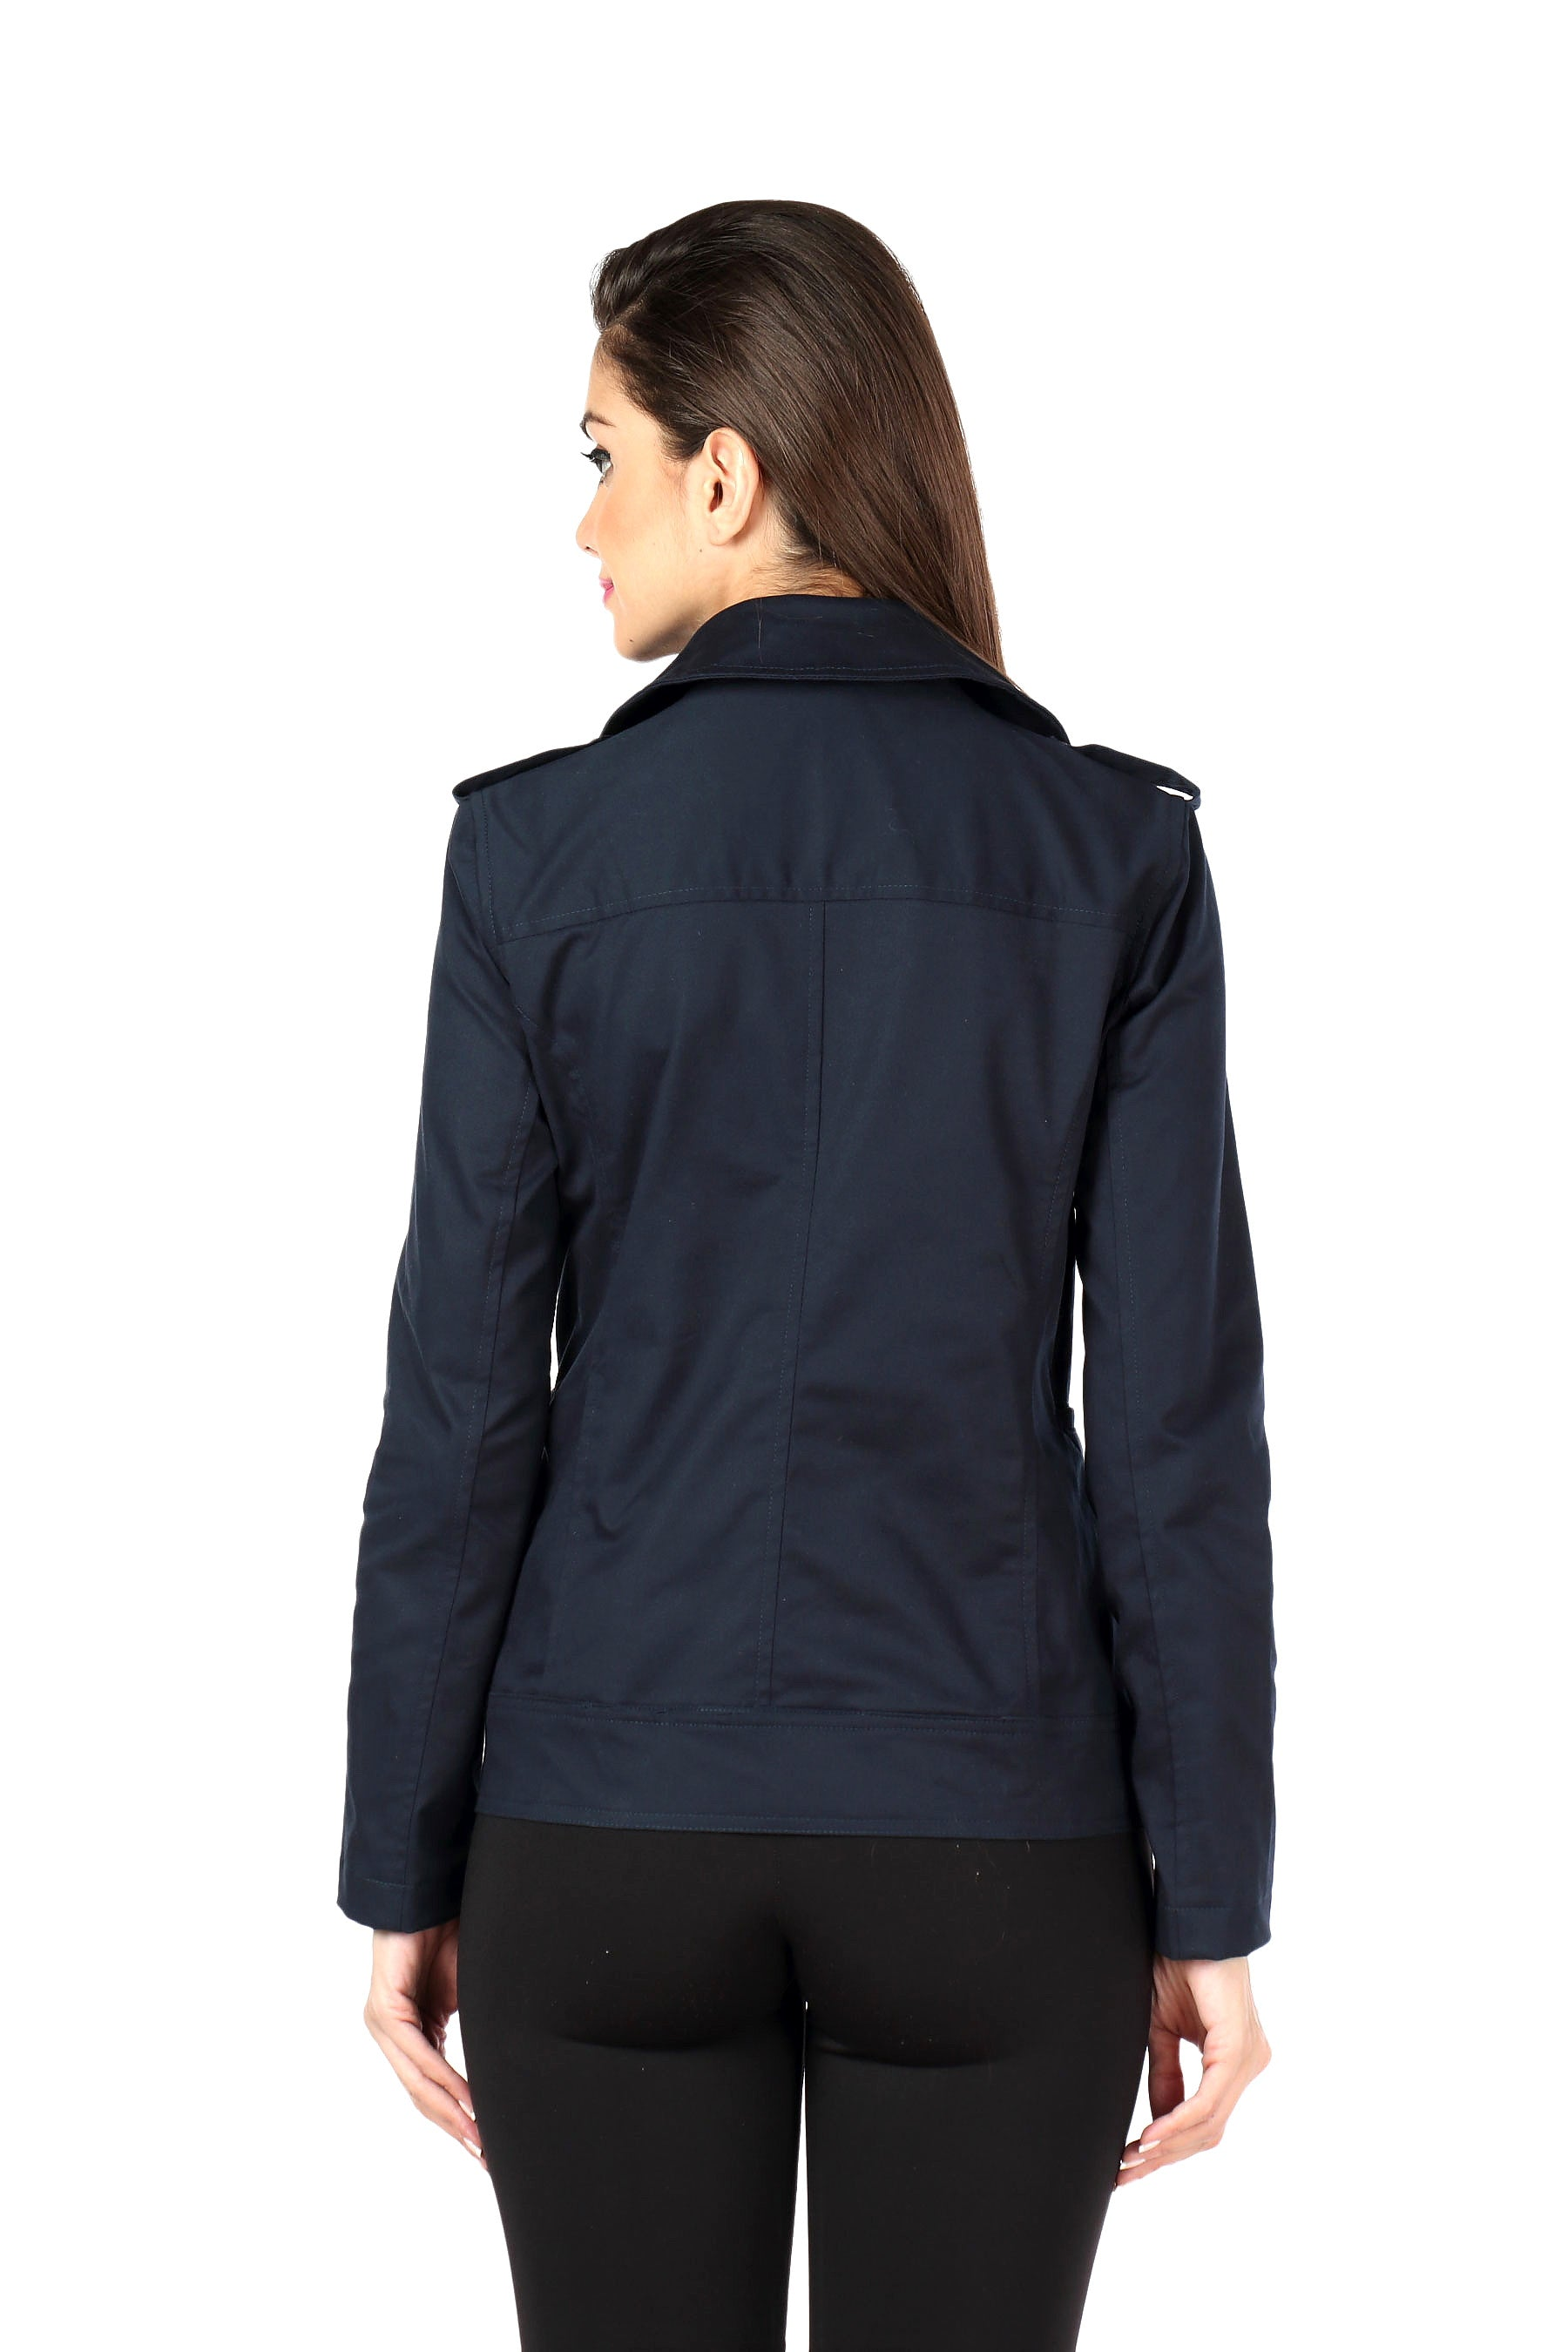 Biker Jacket in Navy Twill Back